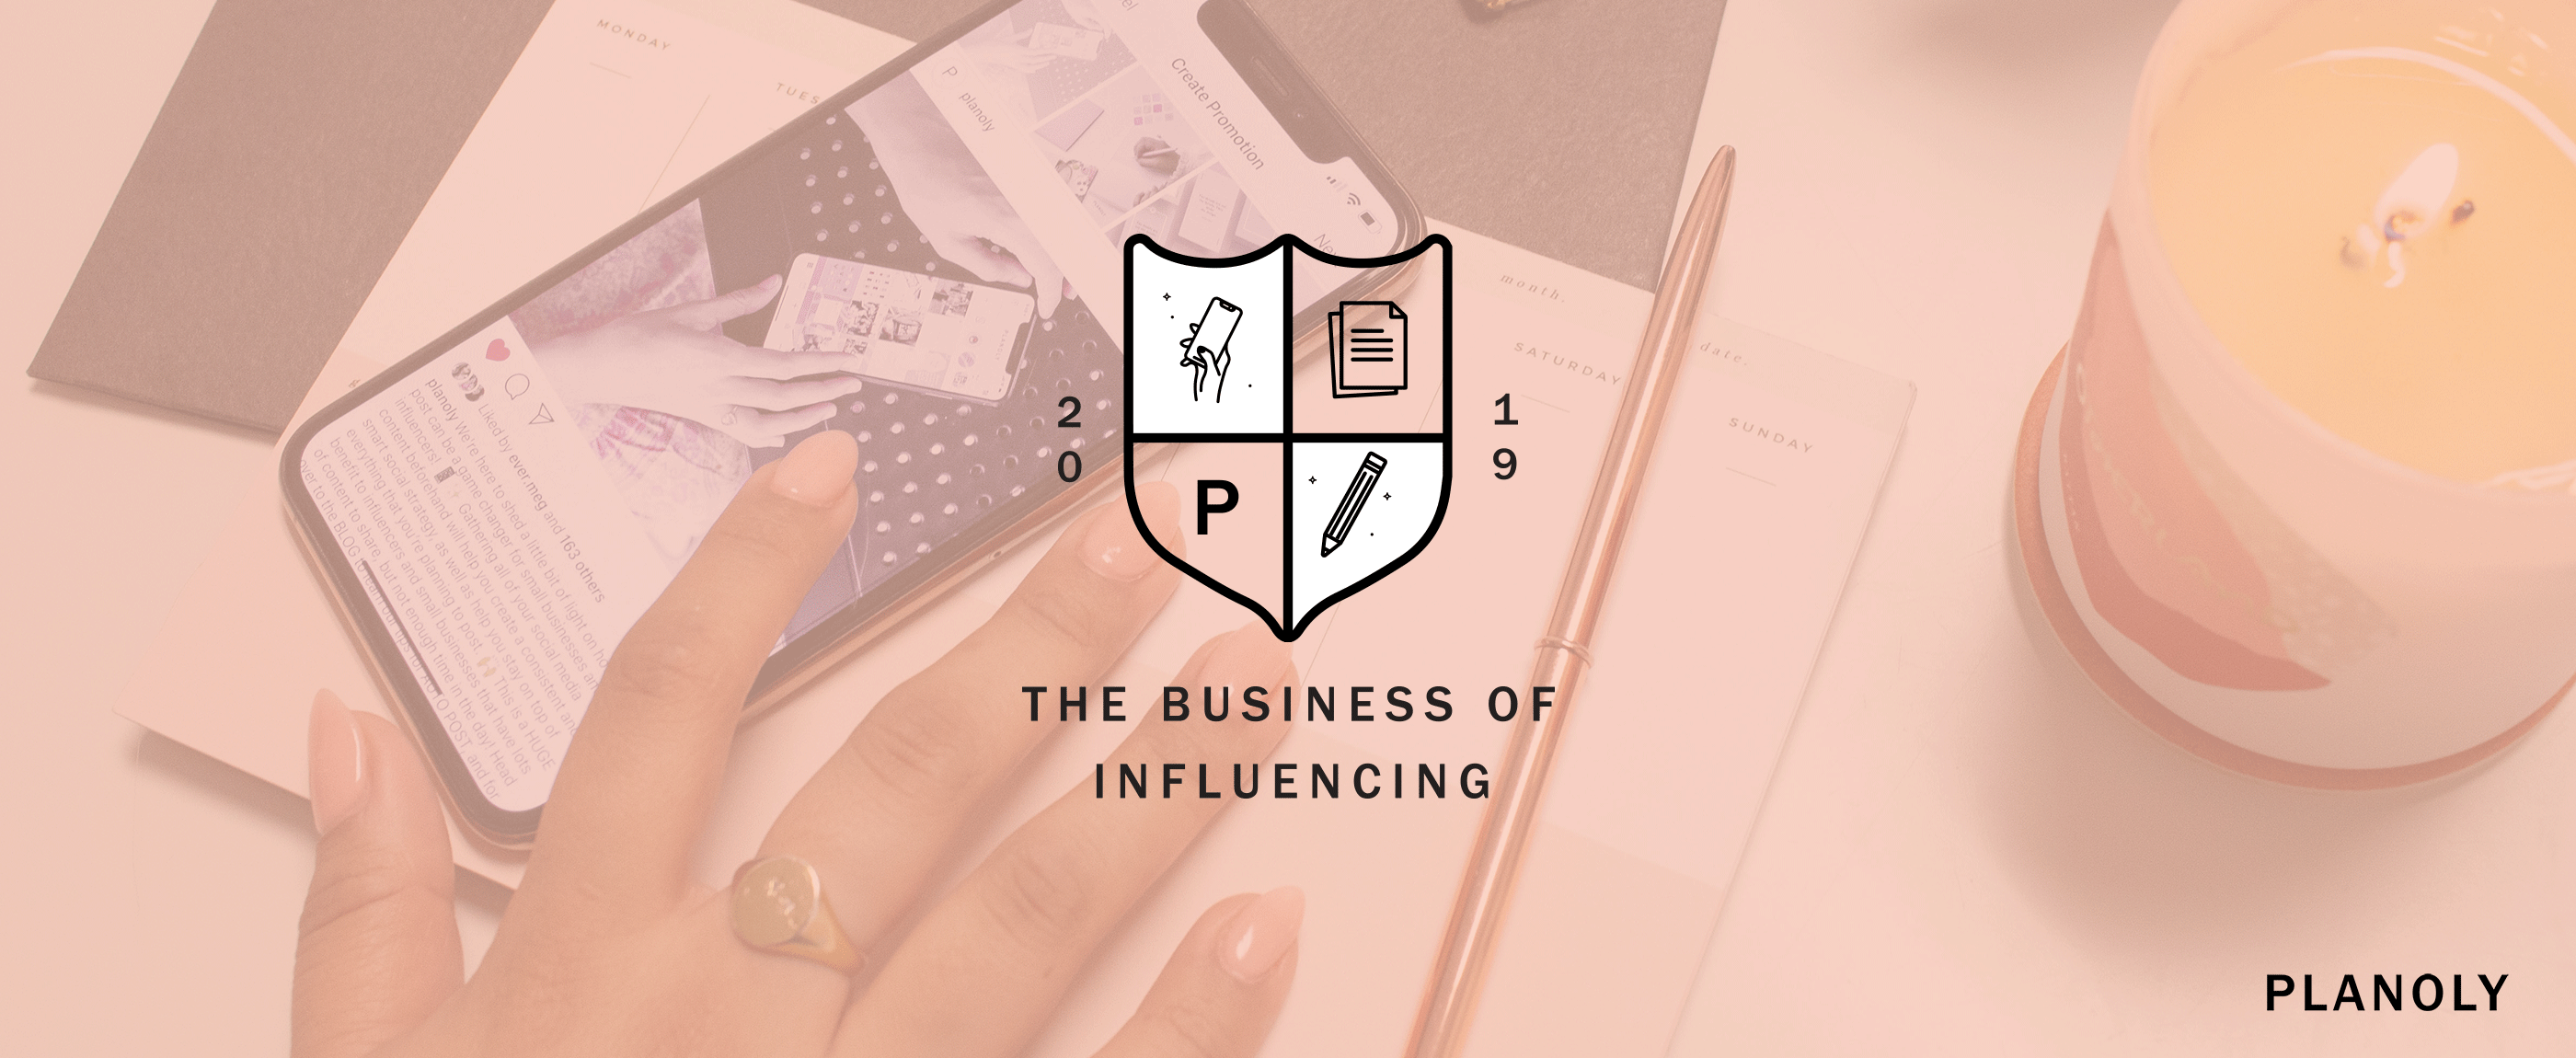 PLANOLY-Blog-Post-The-Business-of-Influencing-Instagram-Ads-Banner